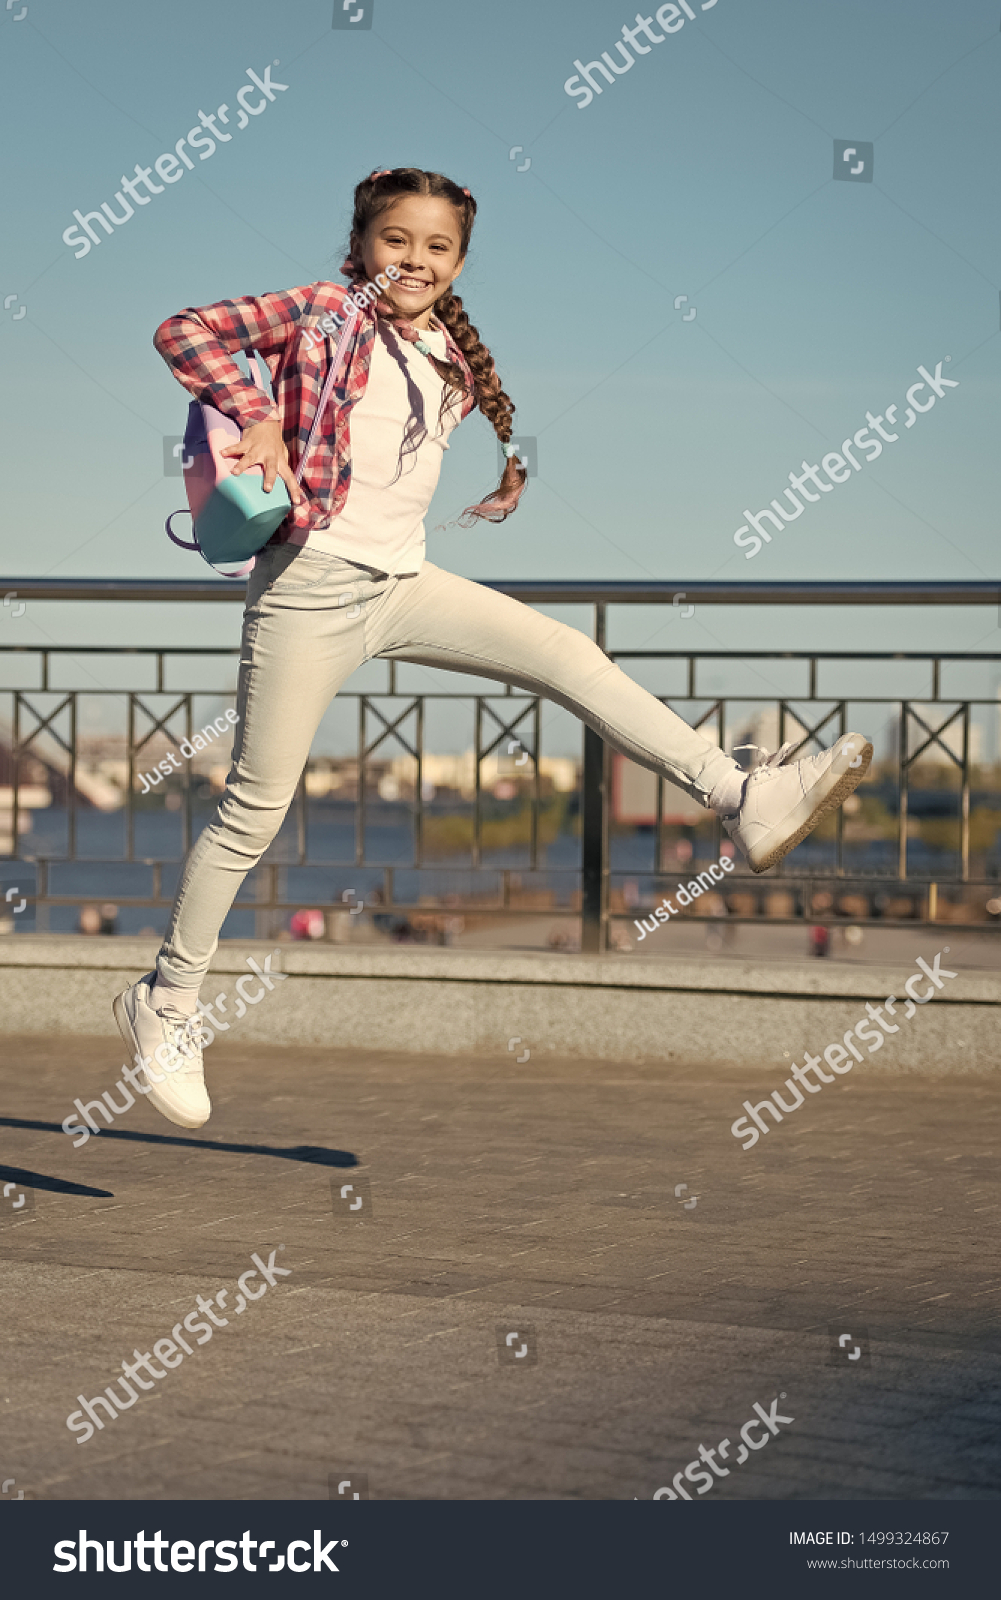 Being active outside. Active little child in motion on urban background. Happy small girl jumping active for pleasure. Active and energetic kid having fun in summer. #1499324867